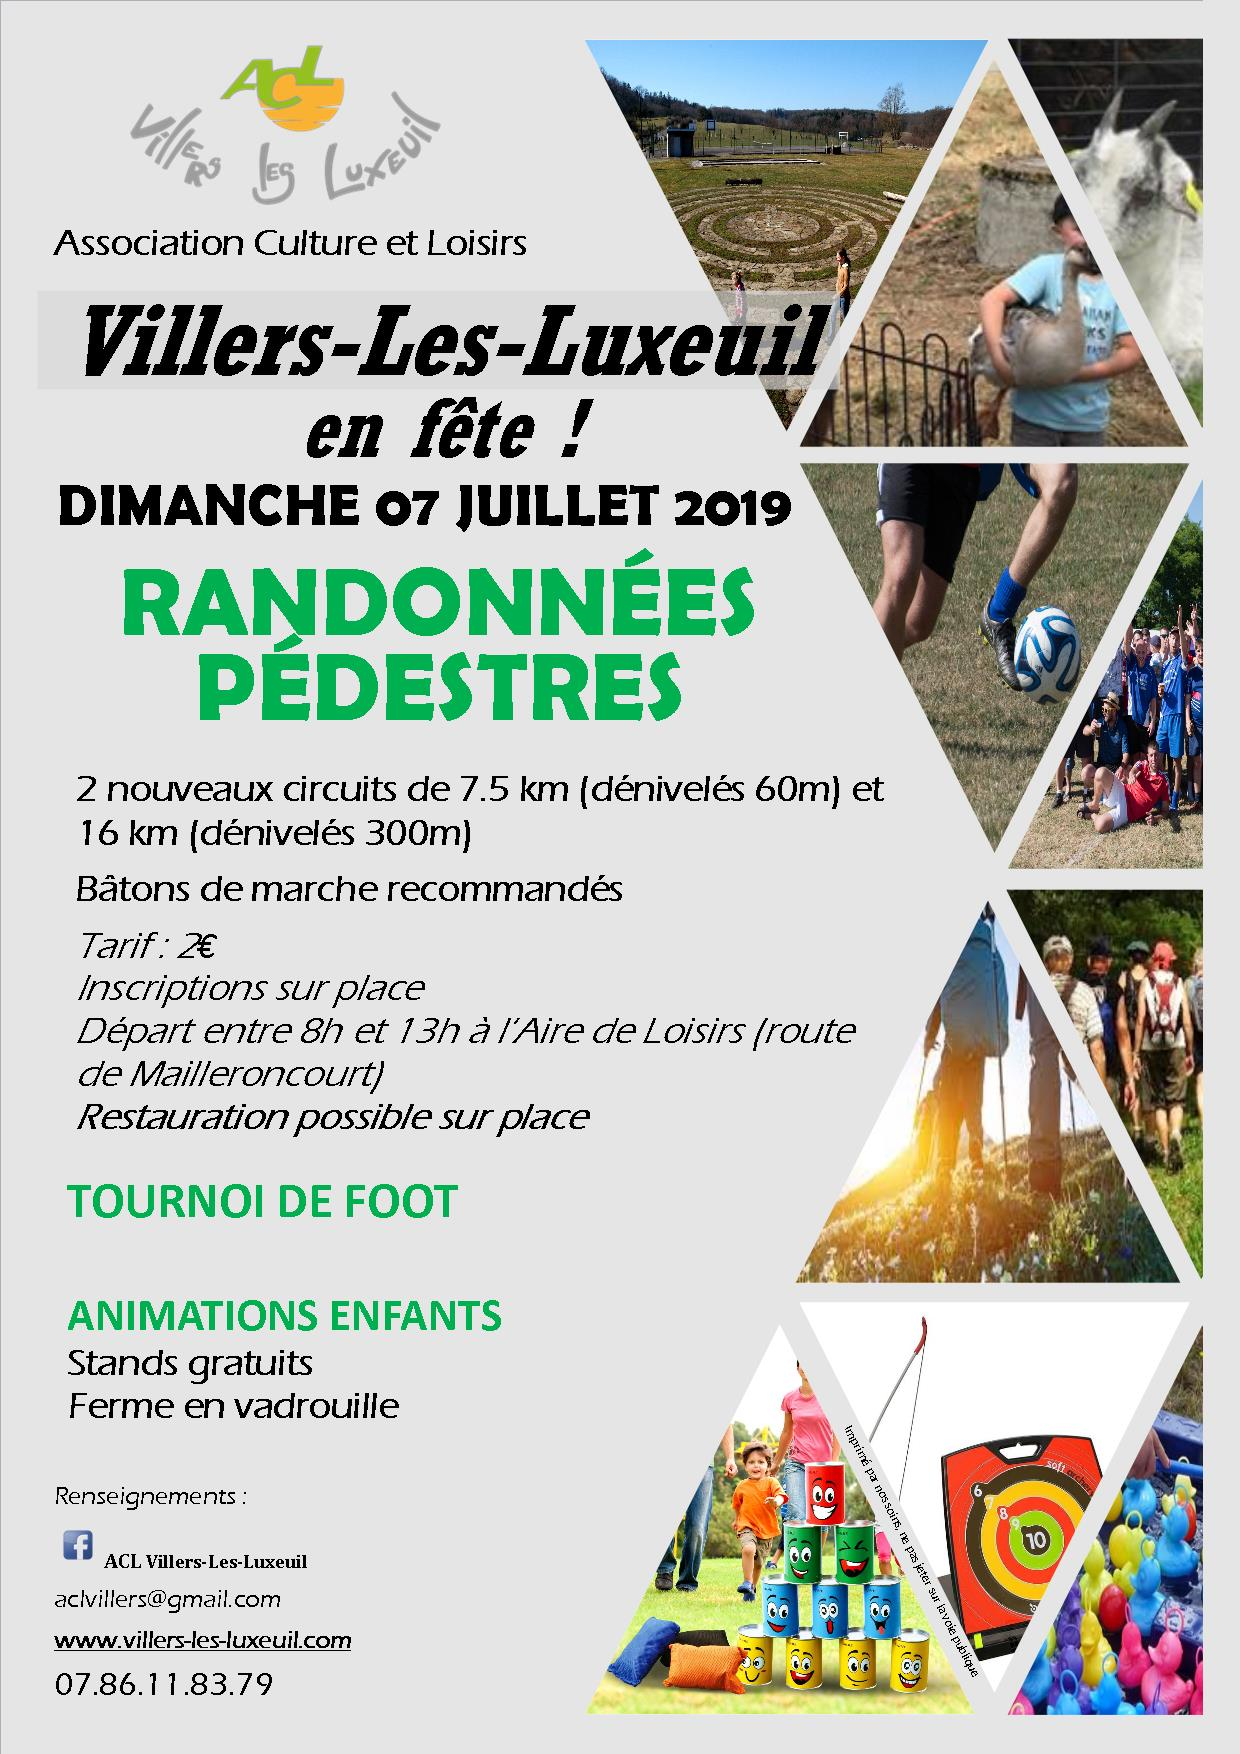 https://www.villers-les-luxeuil.com/projets/villers/files/images/2019_Flyers_Tracts/Tract_VF.jpg